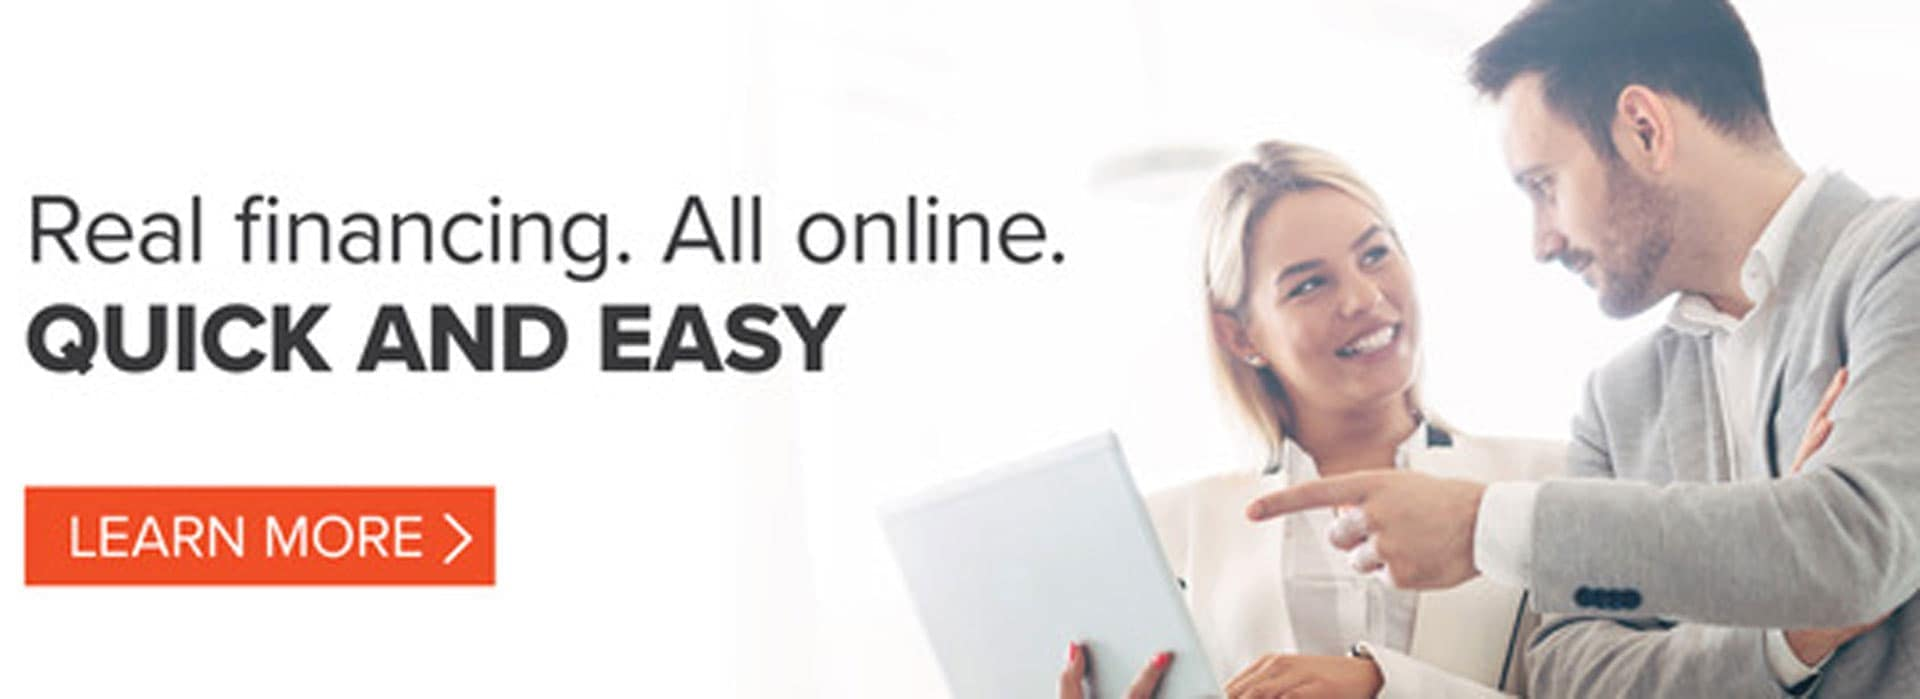 Real financing. All online. Quick and Easy.